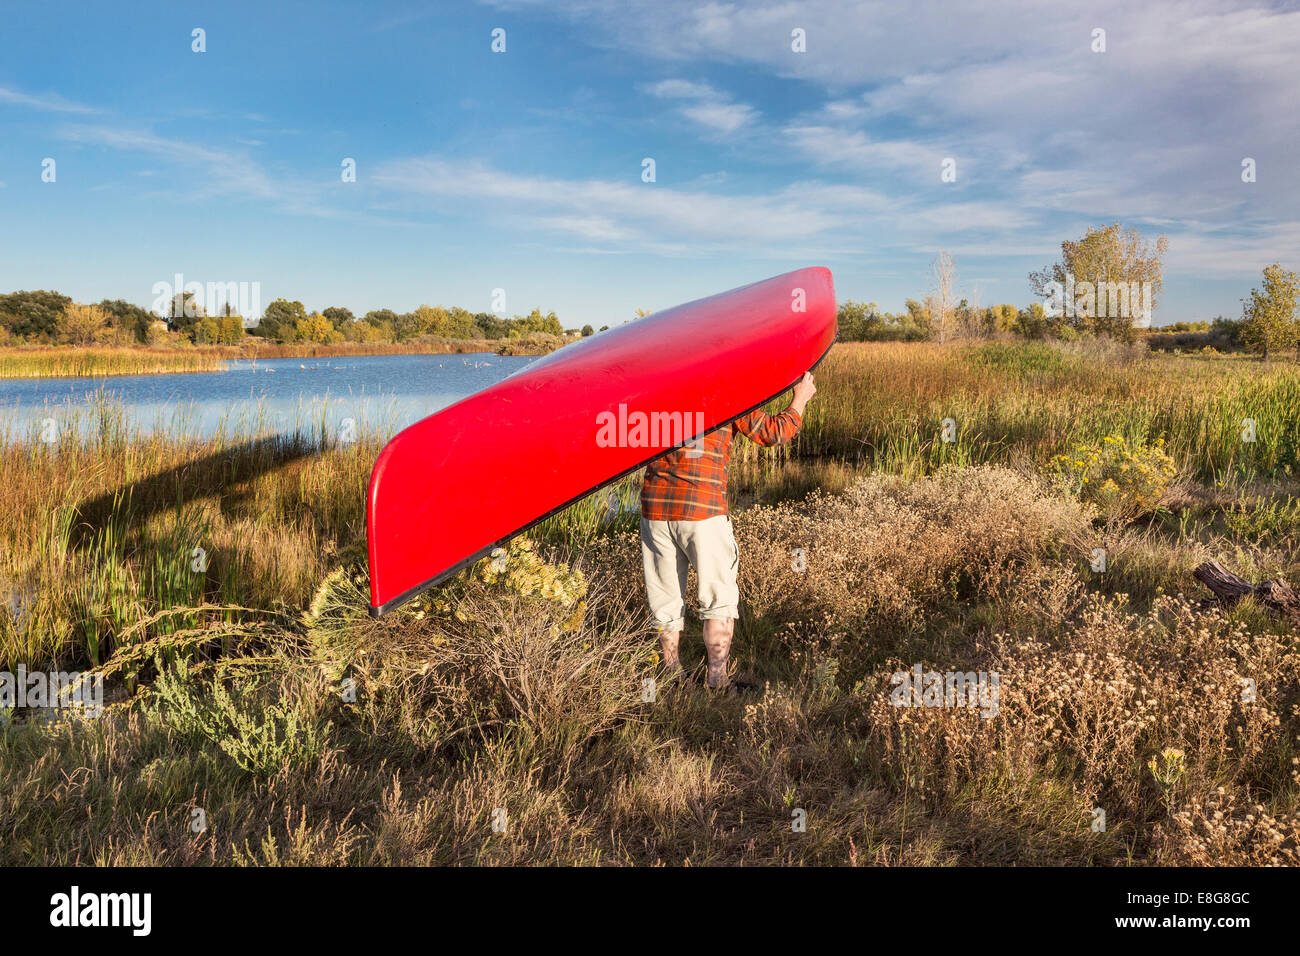 portaging canoe between lakes, Riverbend Ponds Natural Area, Fort Collins, Colorado - Stock Image